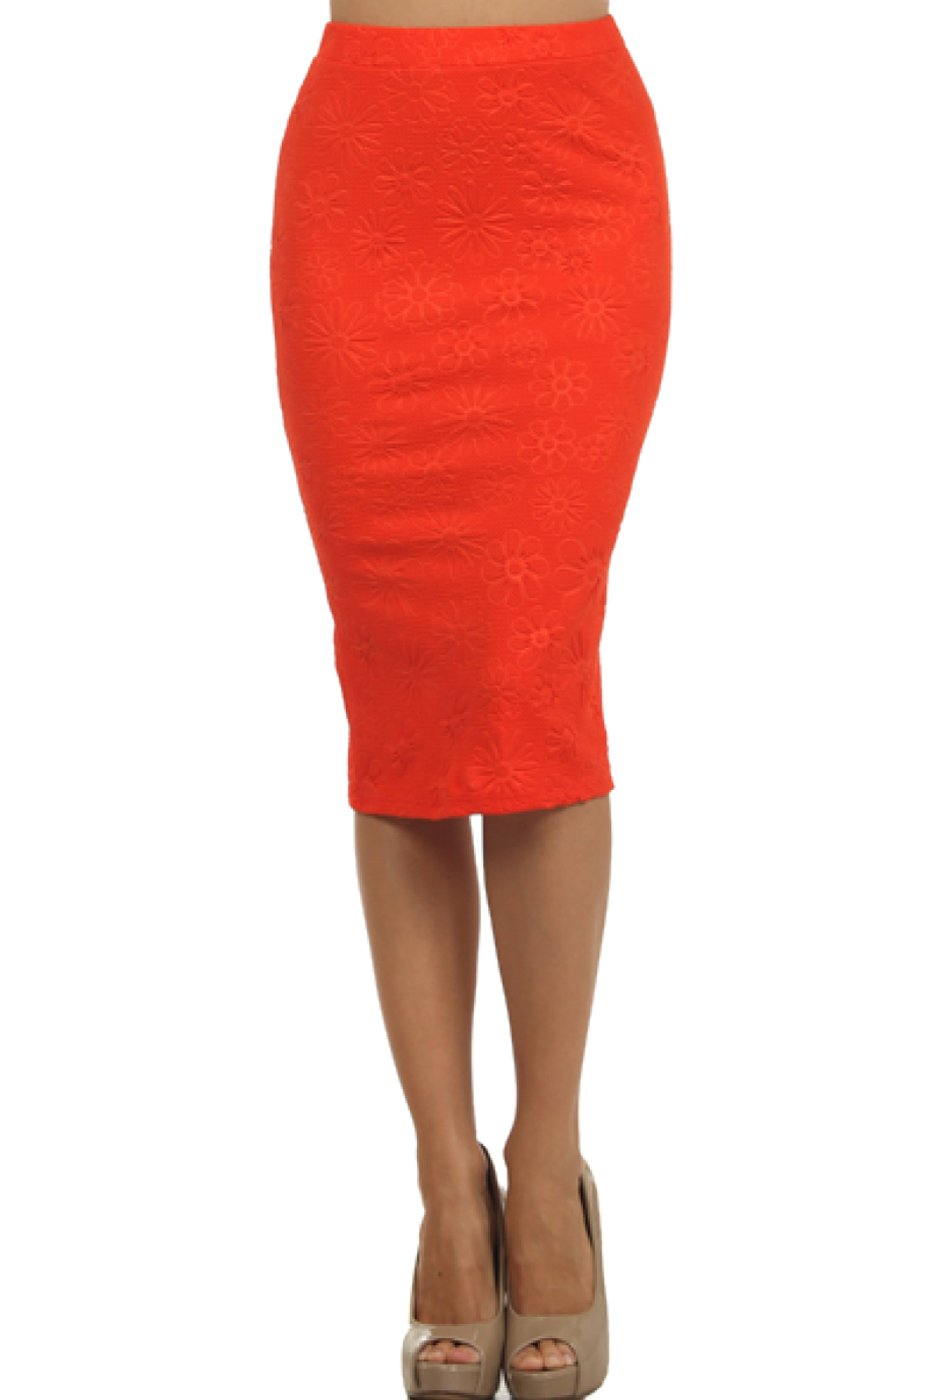 2LUV Women's Mix Print High Waisted Knee Length Pencil Skirt Red M (S170-7 RY)